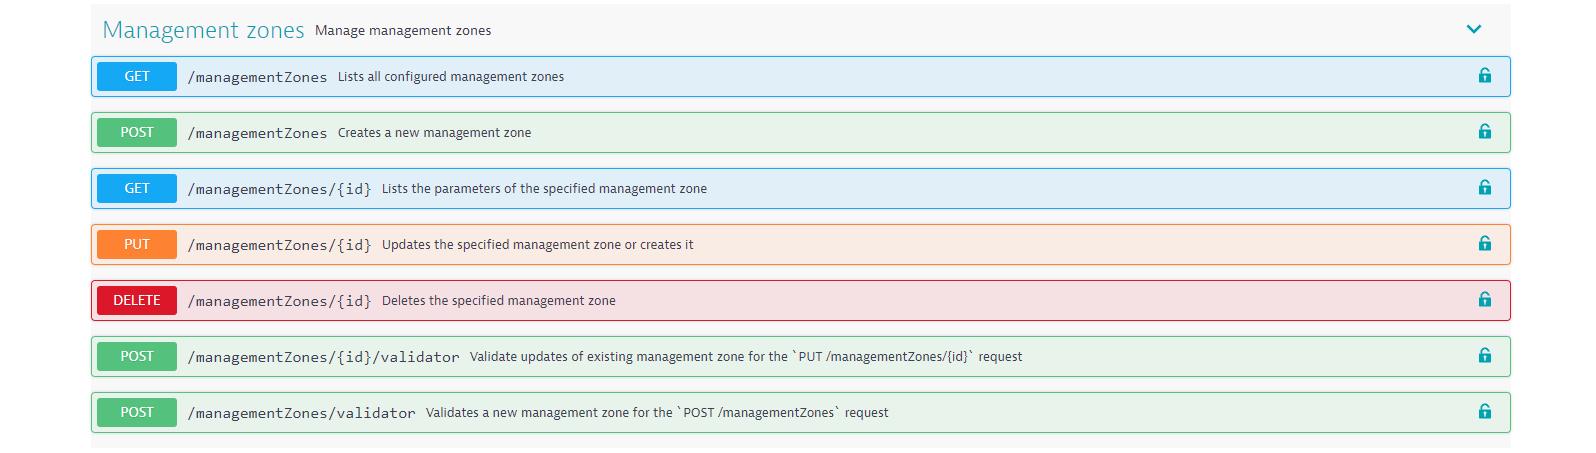 Configuration API endpoints for management zones